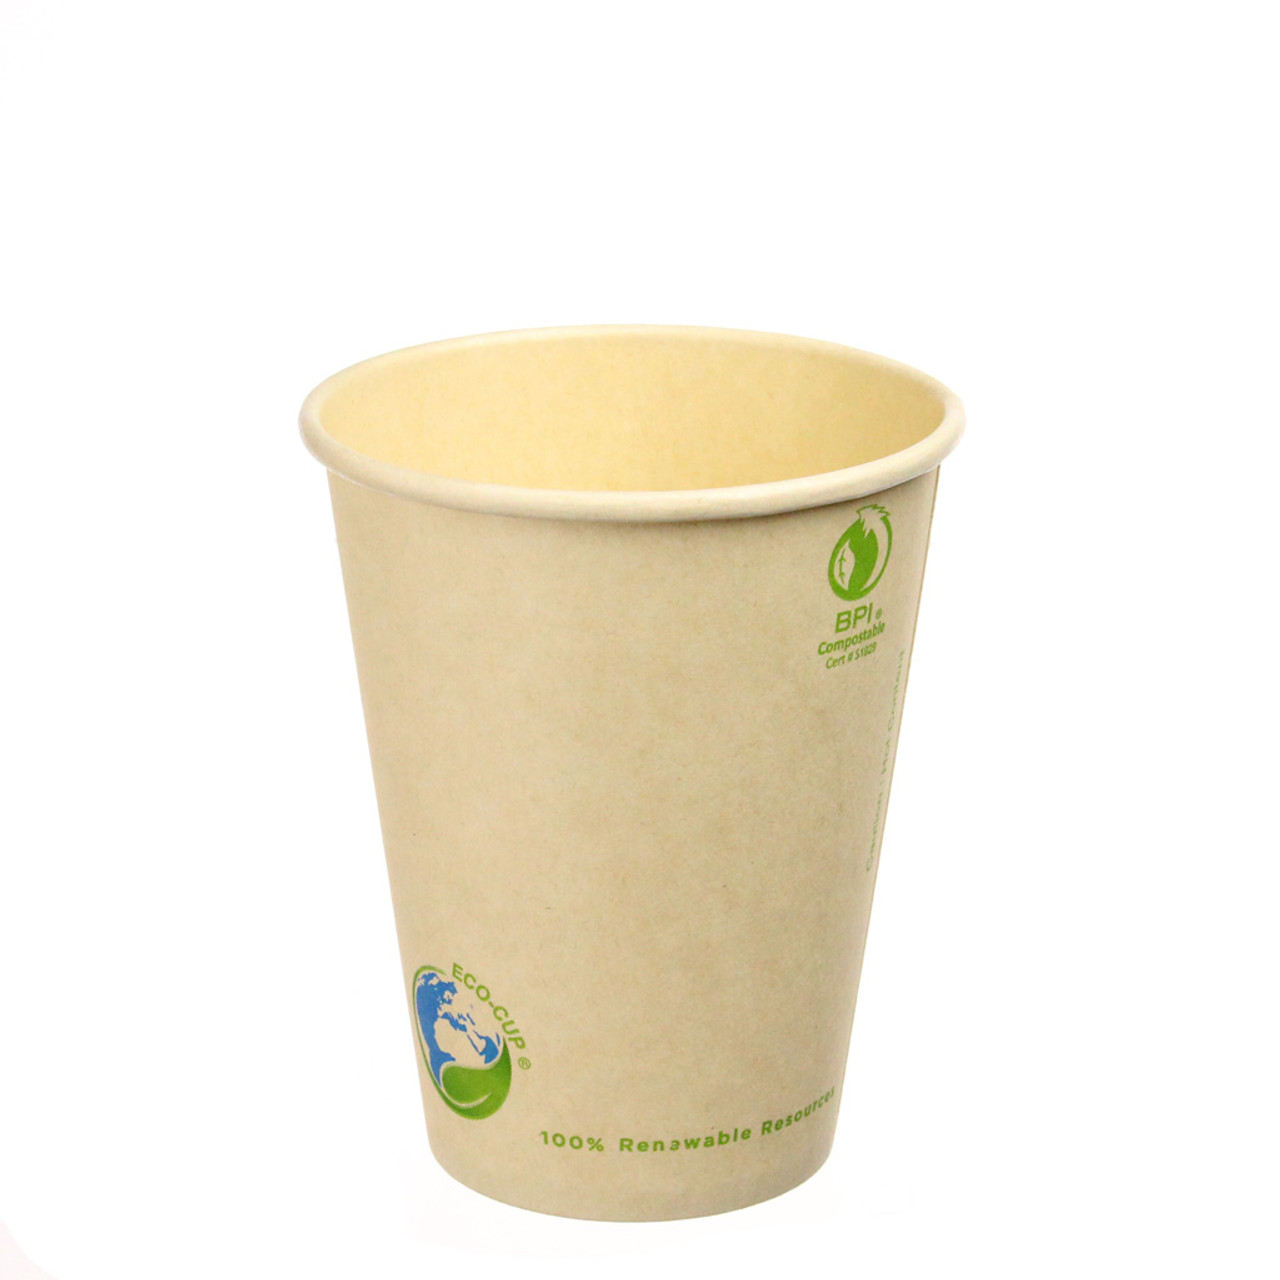 8oz Biodegradable Bamboo Hot Cup